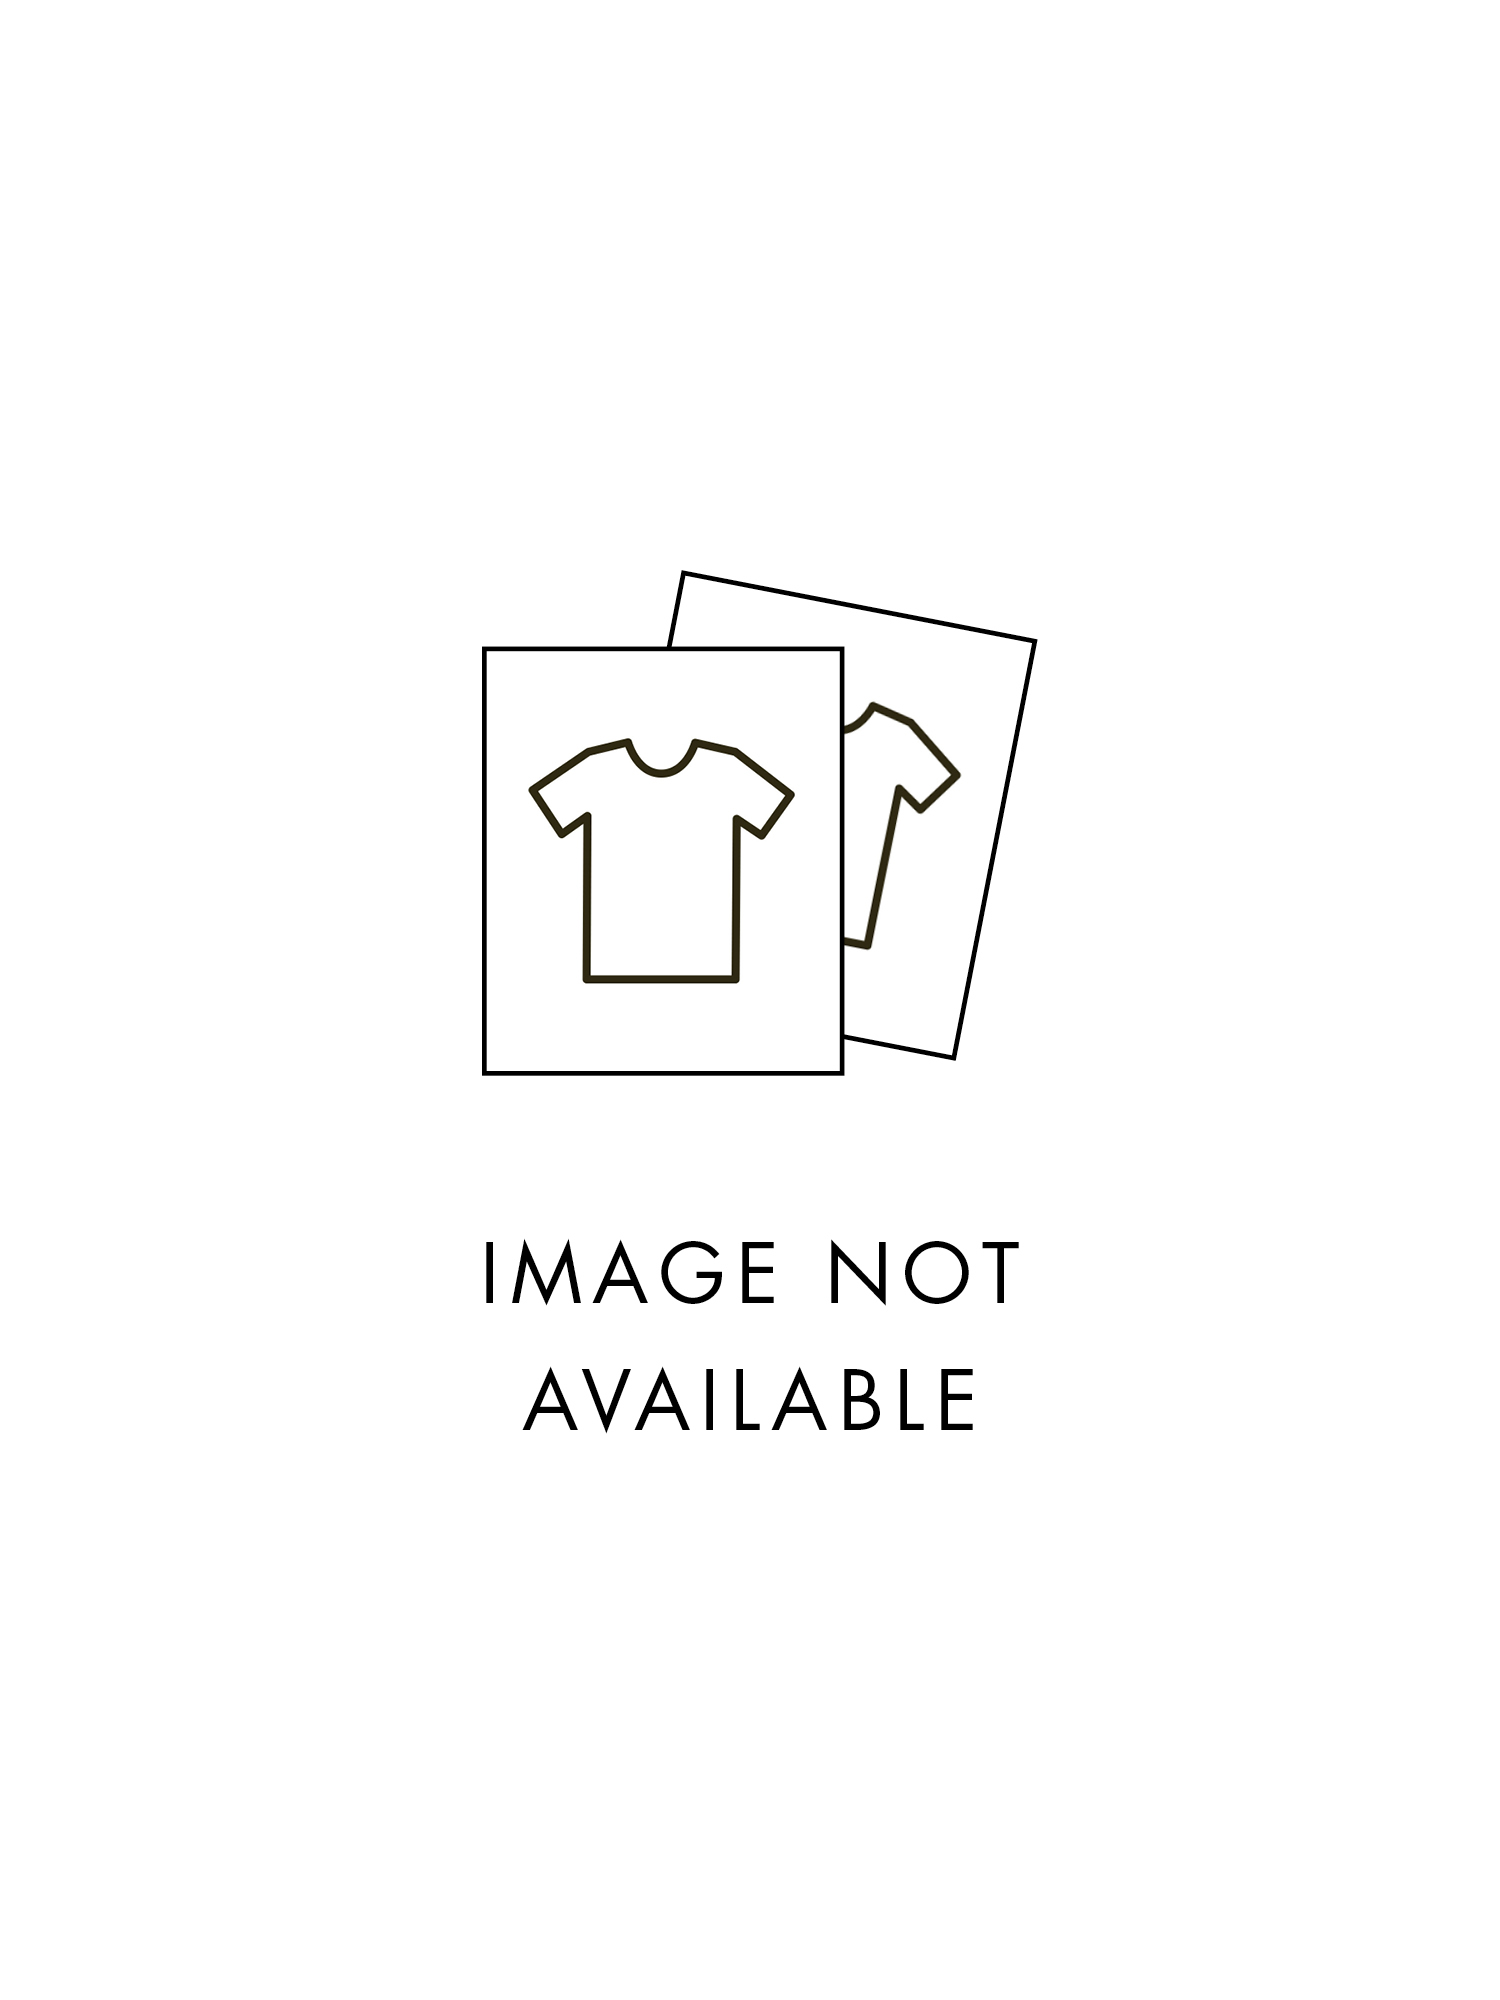 HANRO_B_W_WoolenSilk_ShortlegPants_071421_070795_040.jpg